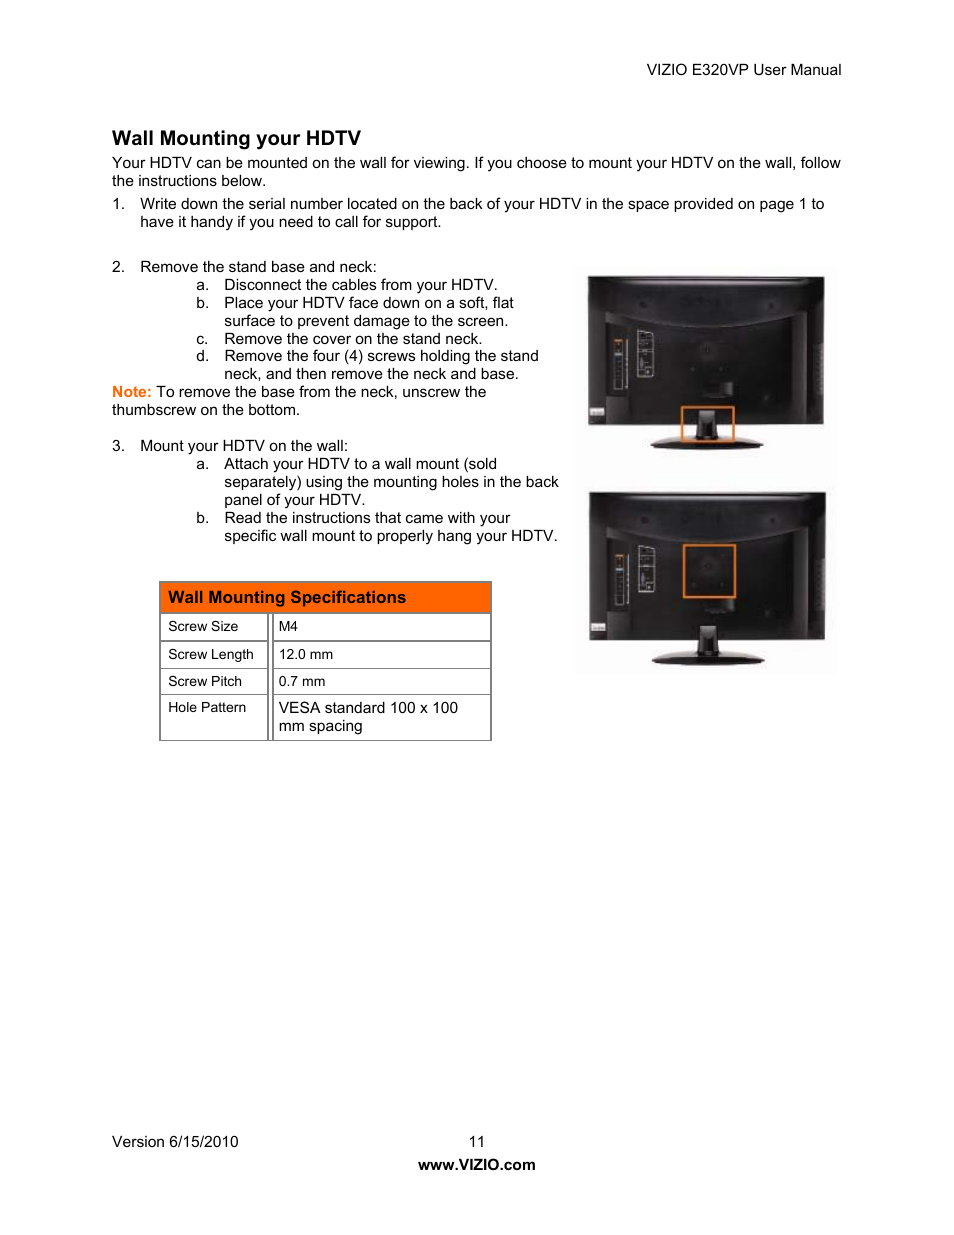 wall mounting your hdtv vizio e320vp user manual page 11 50 rh manualsdir com Vizio TV Models 2010 Recertified Vizio LED HDTVs